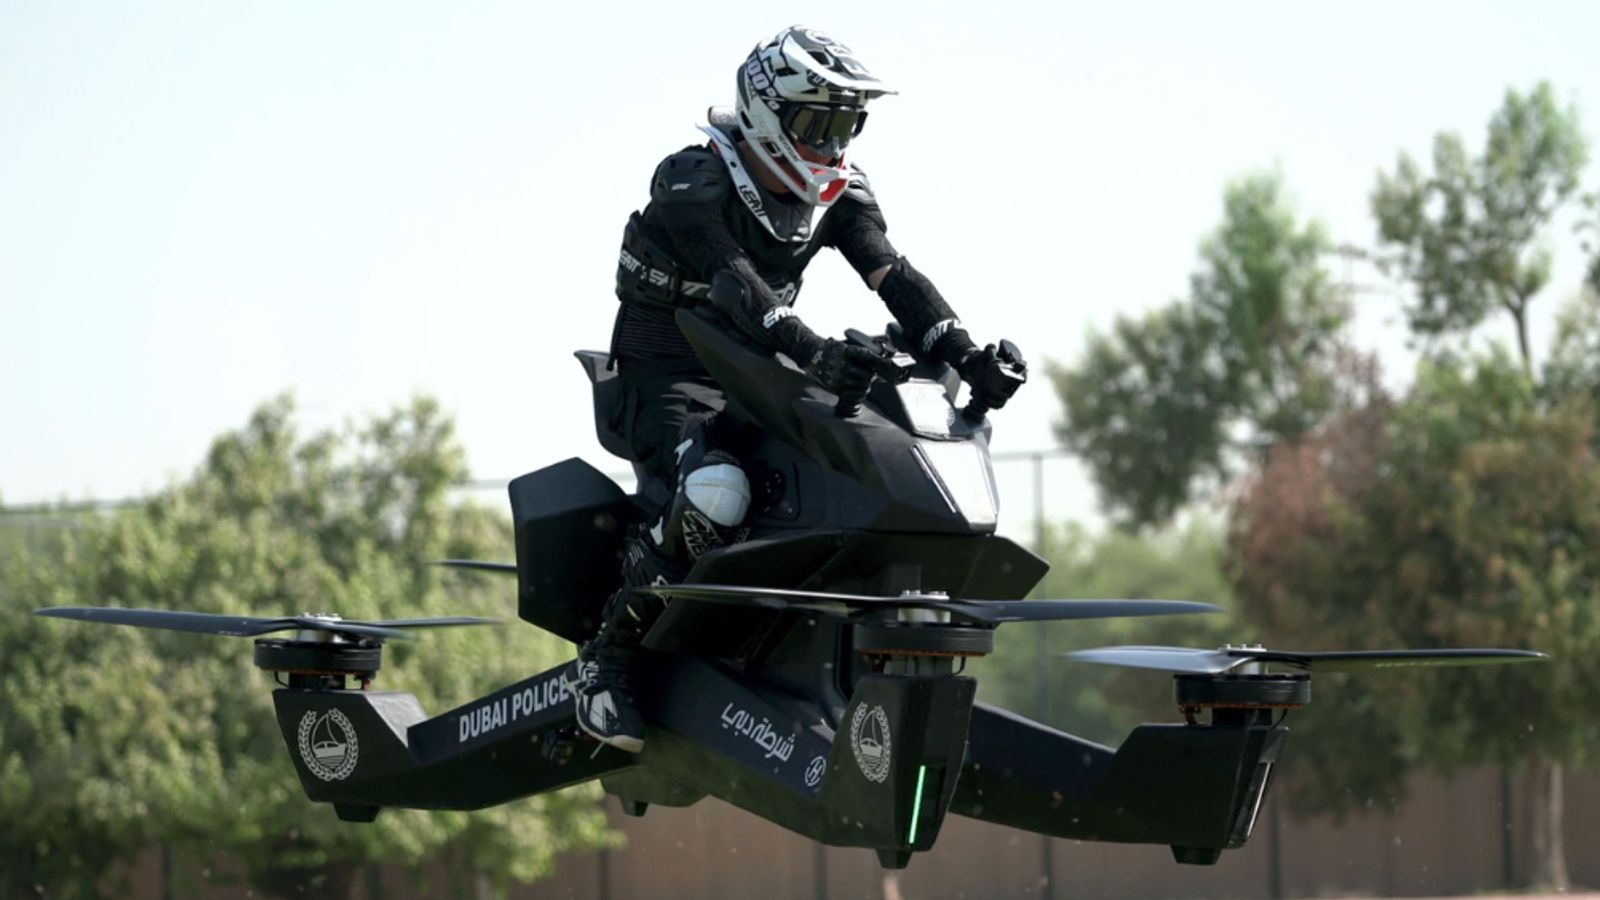 Dubai police training on flying motorbikes ahead of planned 2020 launch